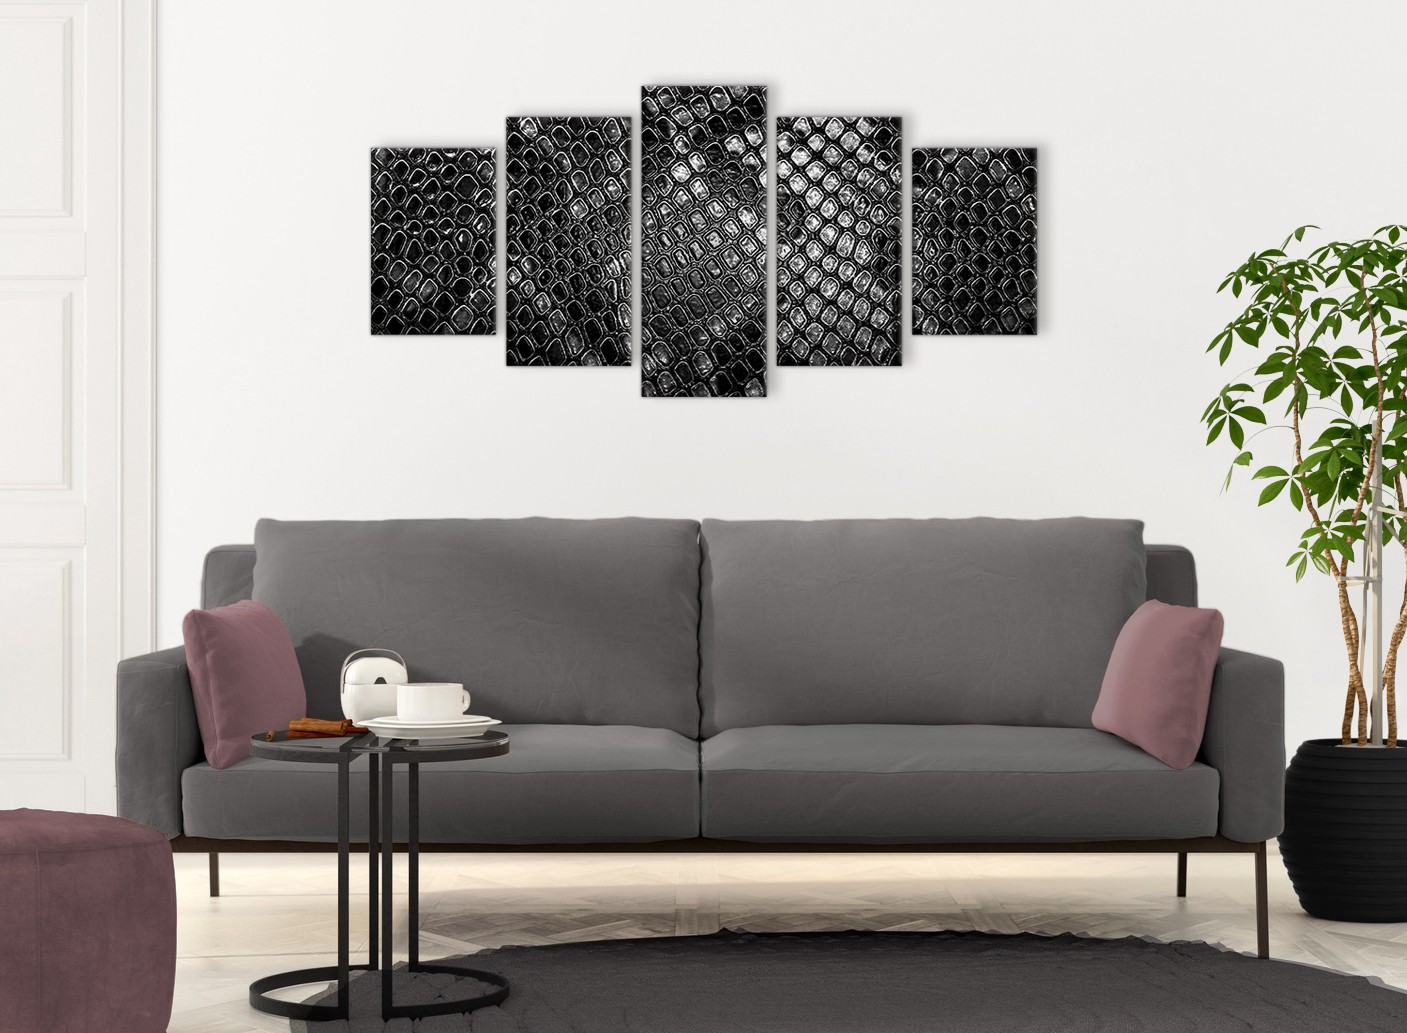 5 panel black white snakeskin animal print abstract living room canvas wall art decor 5510 160cm xl set artwork